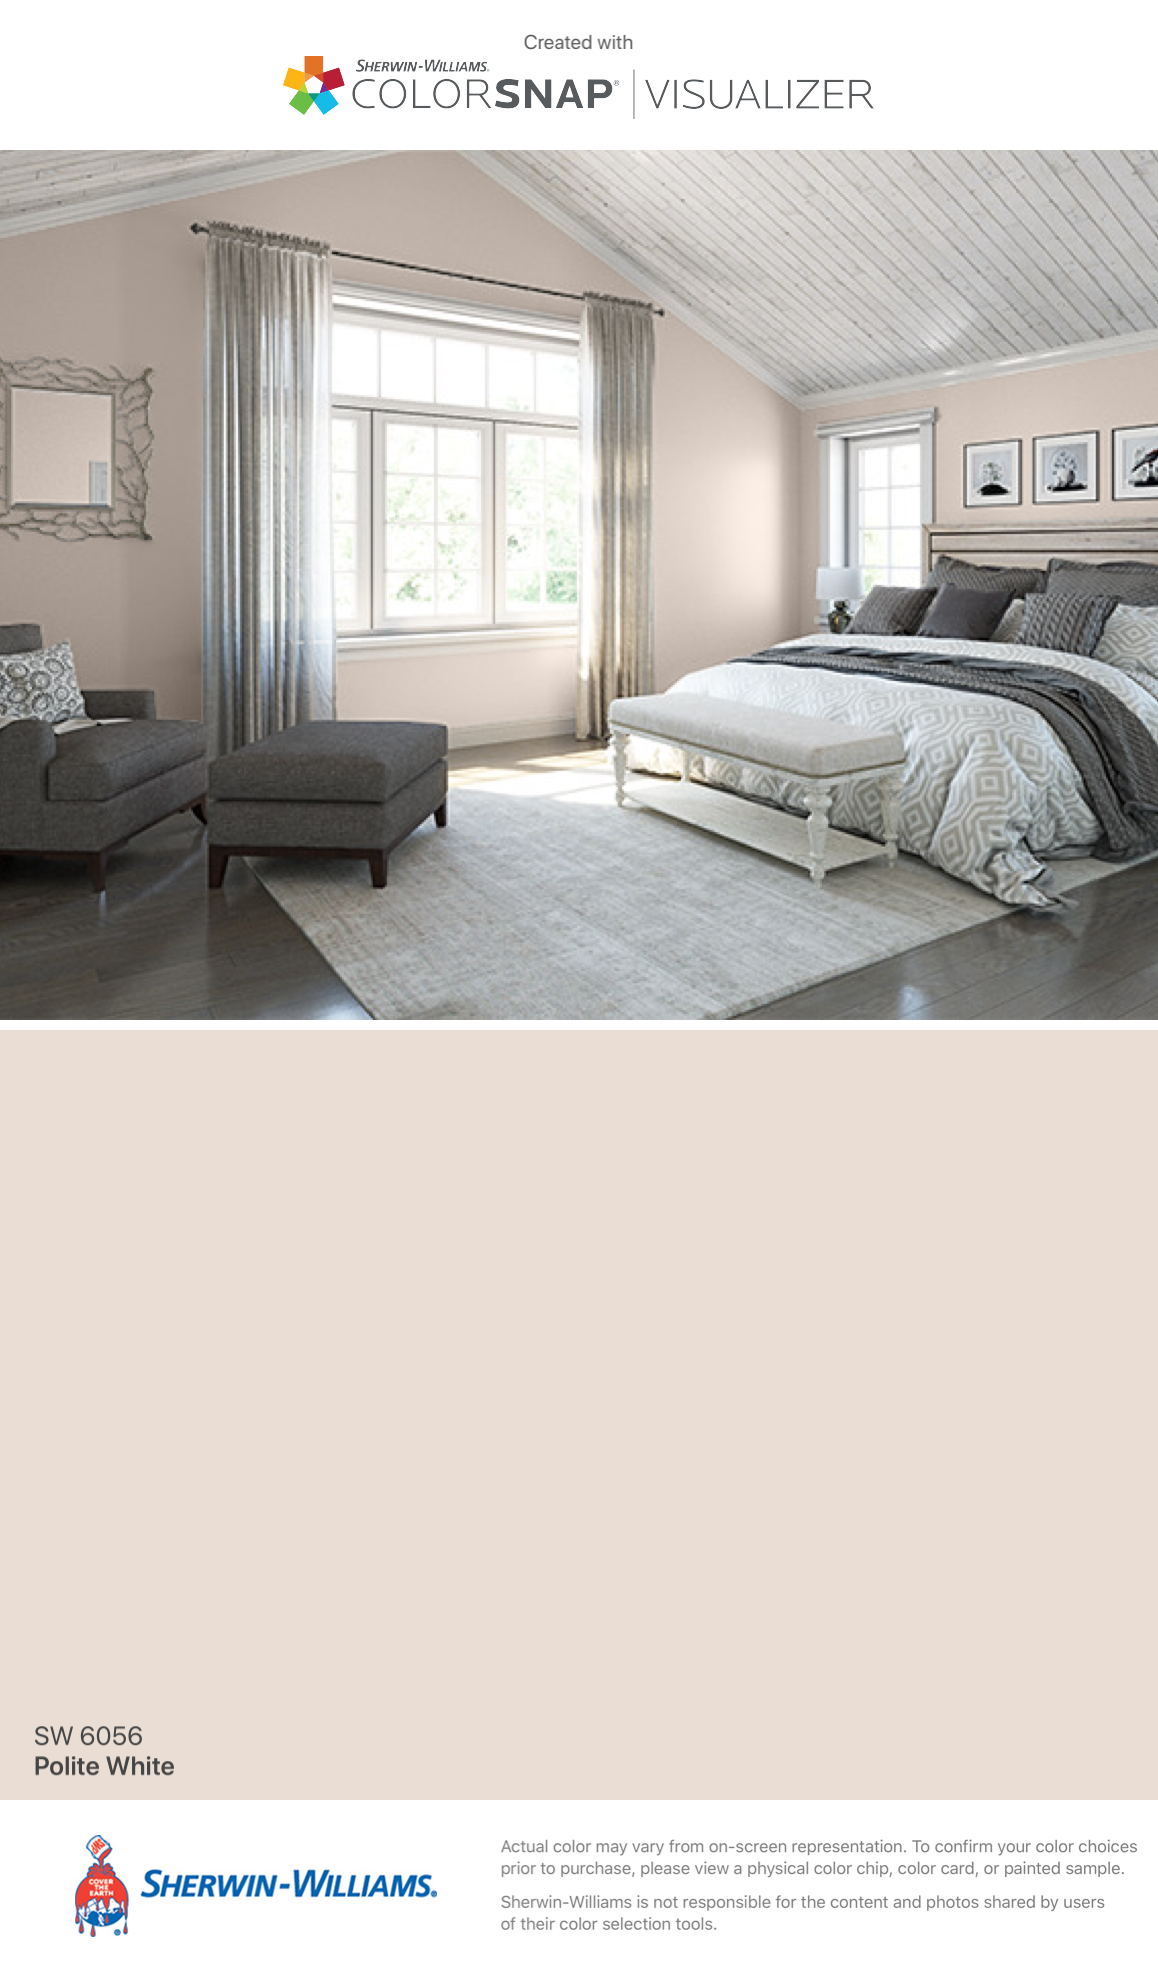 GroB I Found This Color With ColorSnap® Visualizer For IPhone By  Sherwin Williams: Polite